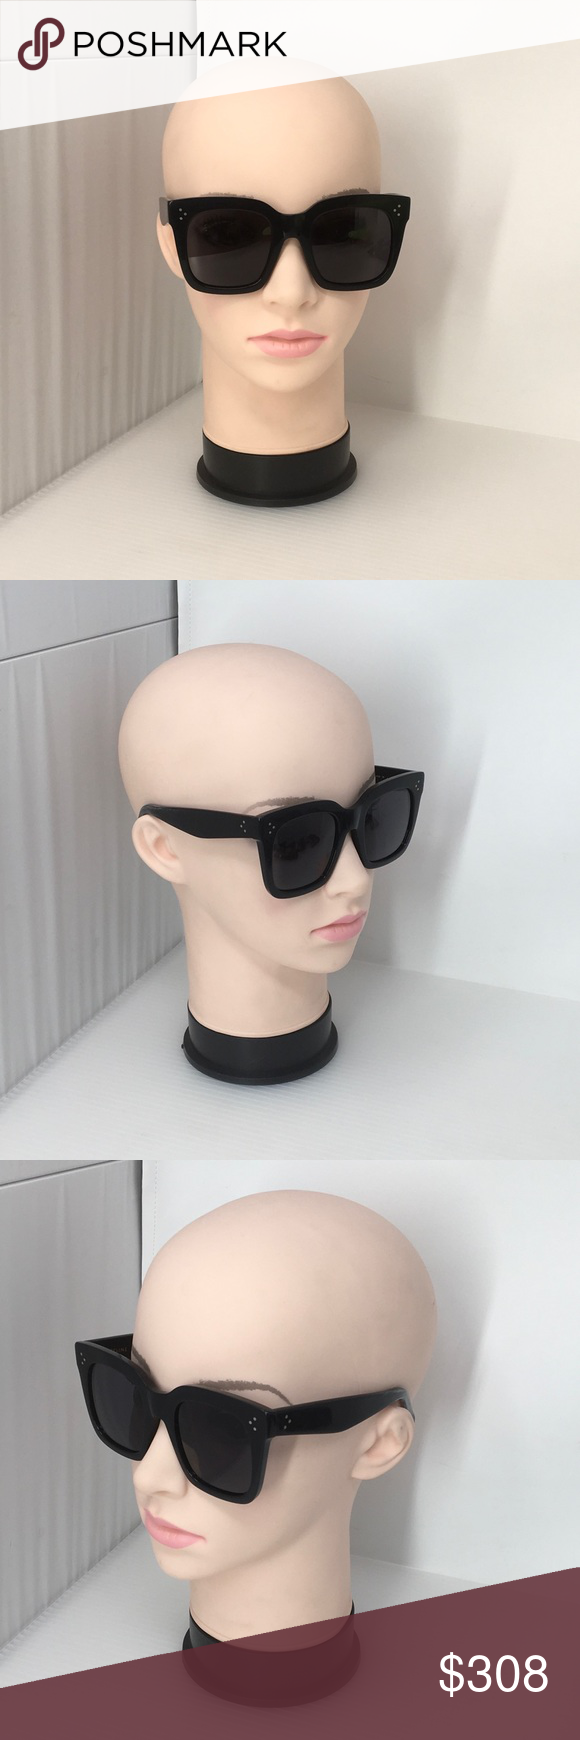 4f2d6fd3210c Black Celine Tilda Sunglasses - Cl 41076 807 These Celine Sunglasses  Feature the Iconic Oversized Square